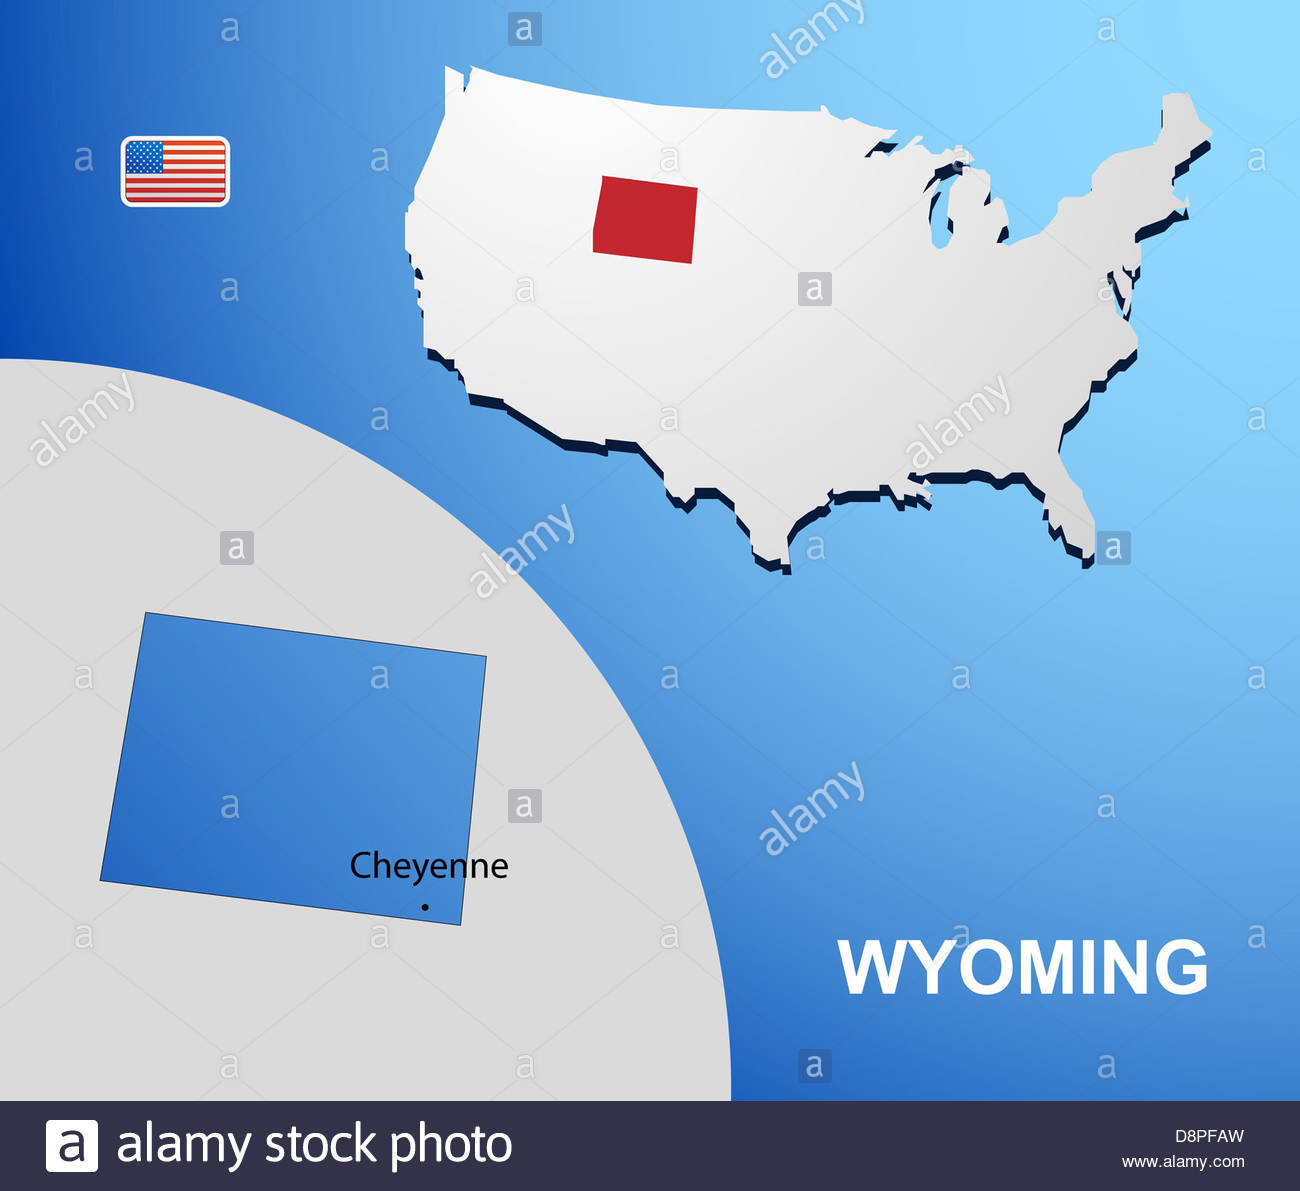 Wyoming on USA map with map of the state Stock Photo: 57043361 - Alamy